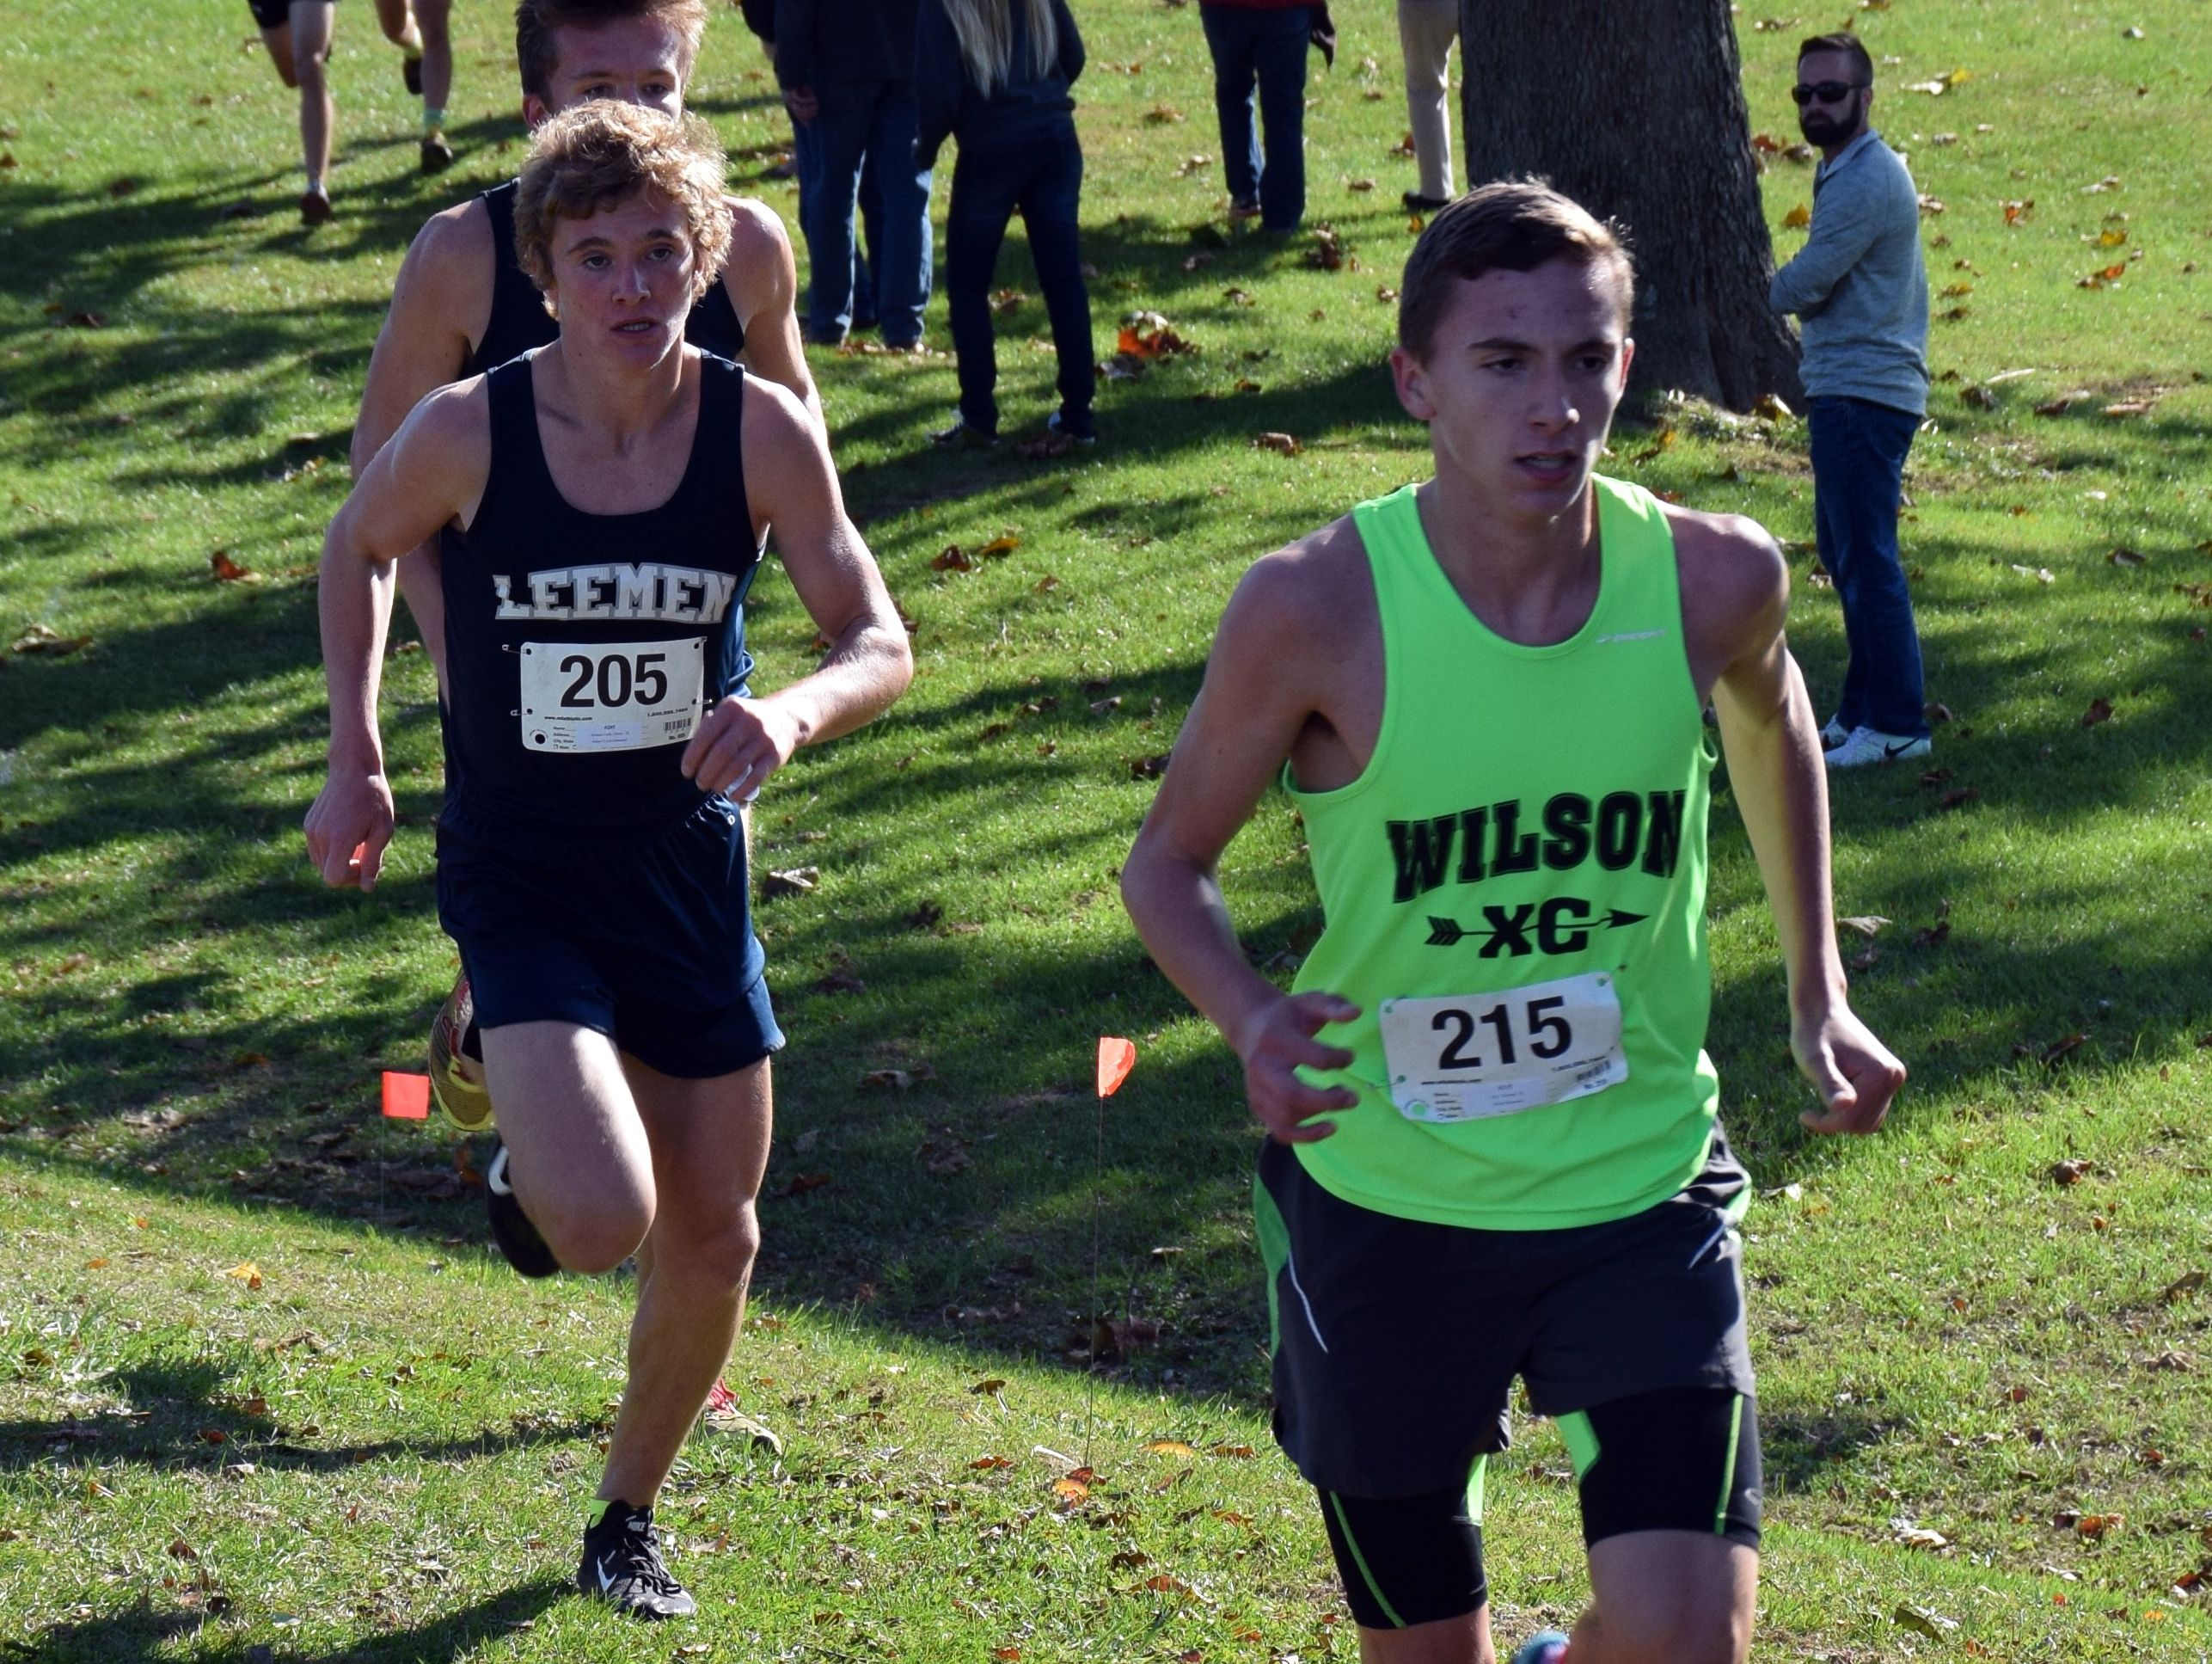 Wilson Memorial's Vincent Leo, right, leads Robert E. Lee's Oliver Wilson-Cook, center, and Jacob Warner at the mile mark of the boys race at the Conference 36 cross country championship at Wilson Workforce & Rehabilitation Center in Fishersville, Va., on Wednesday, Oct., 26, 2016.